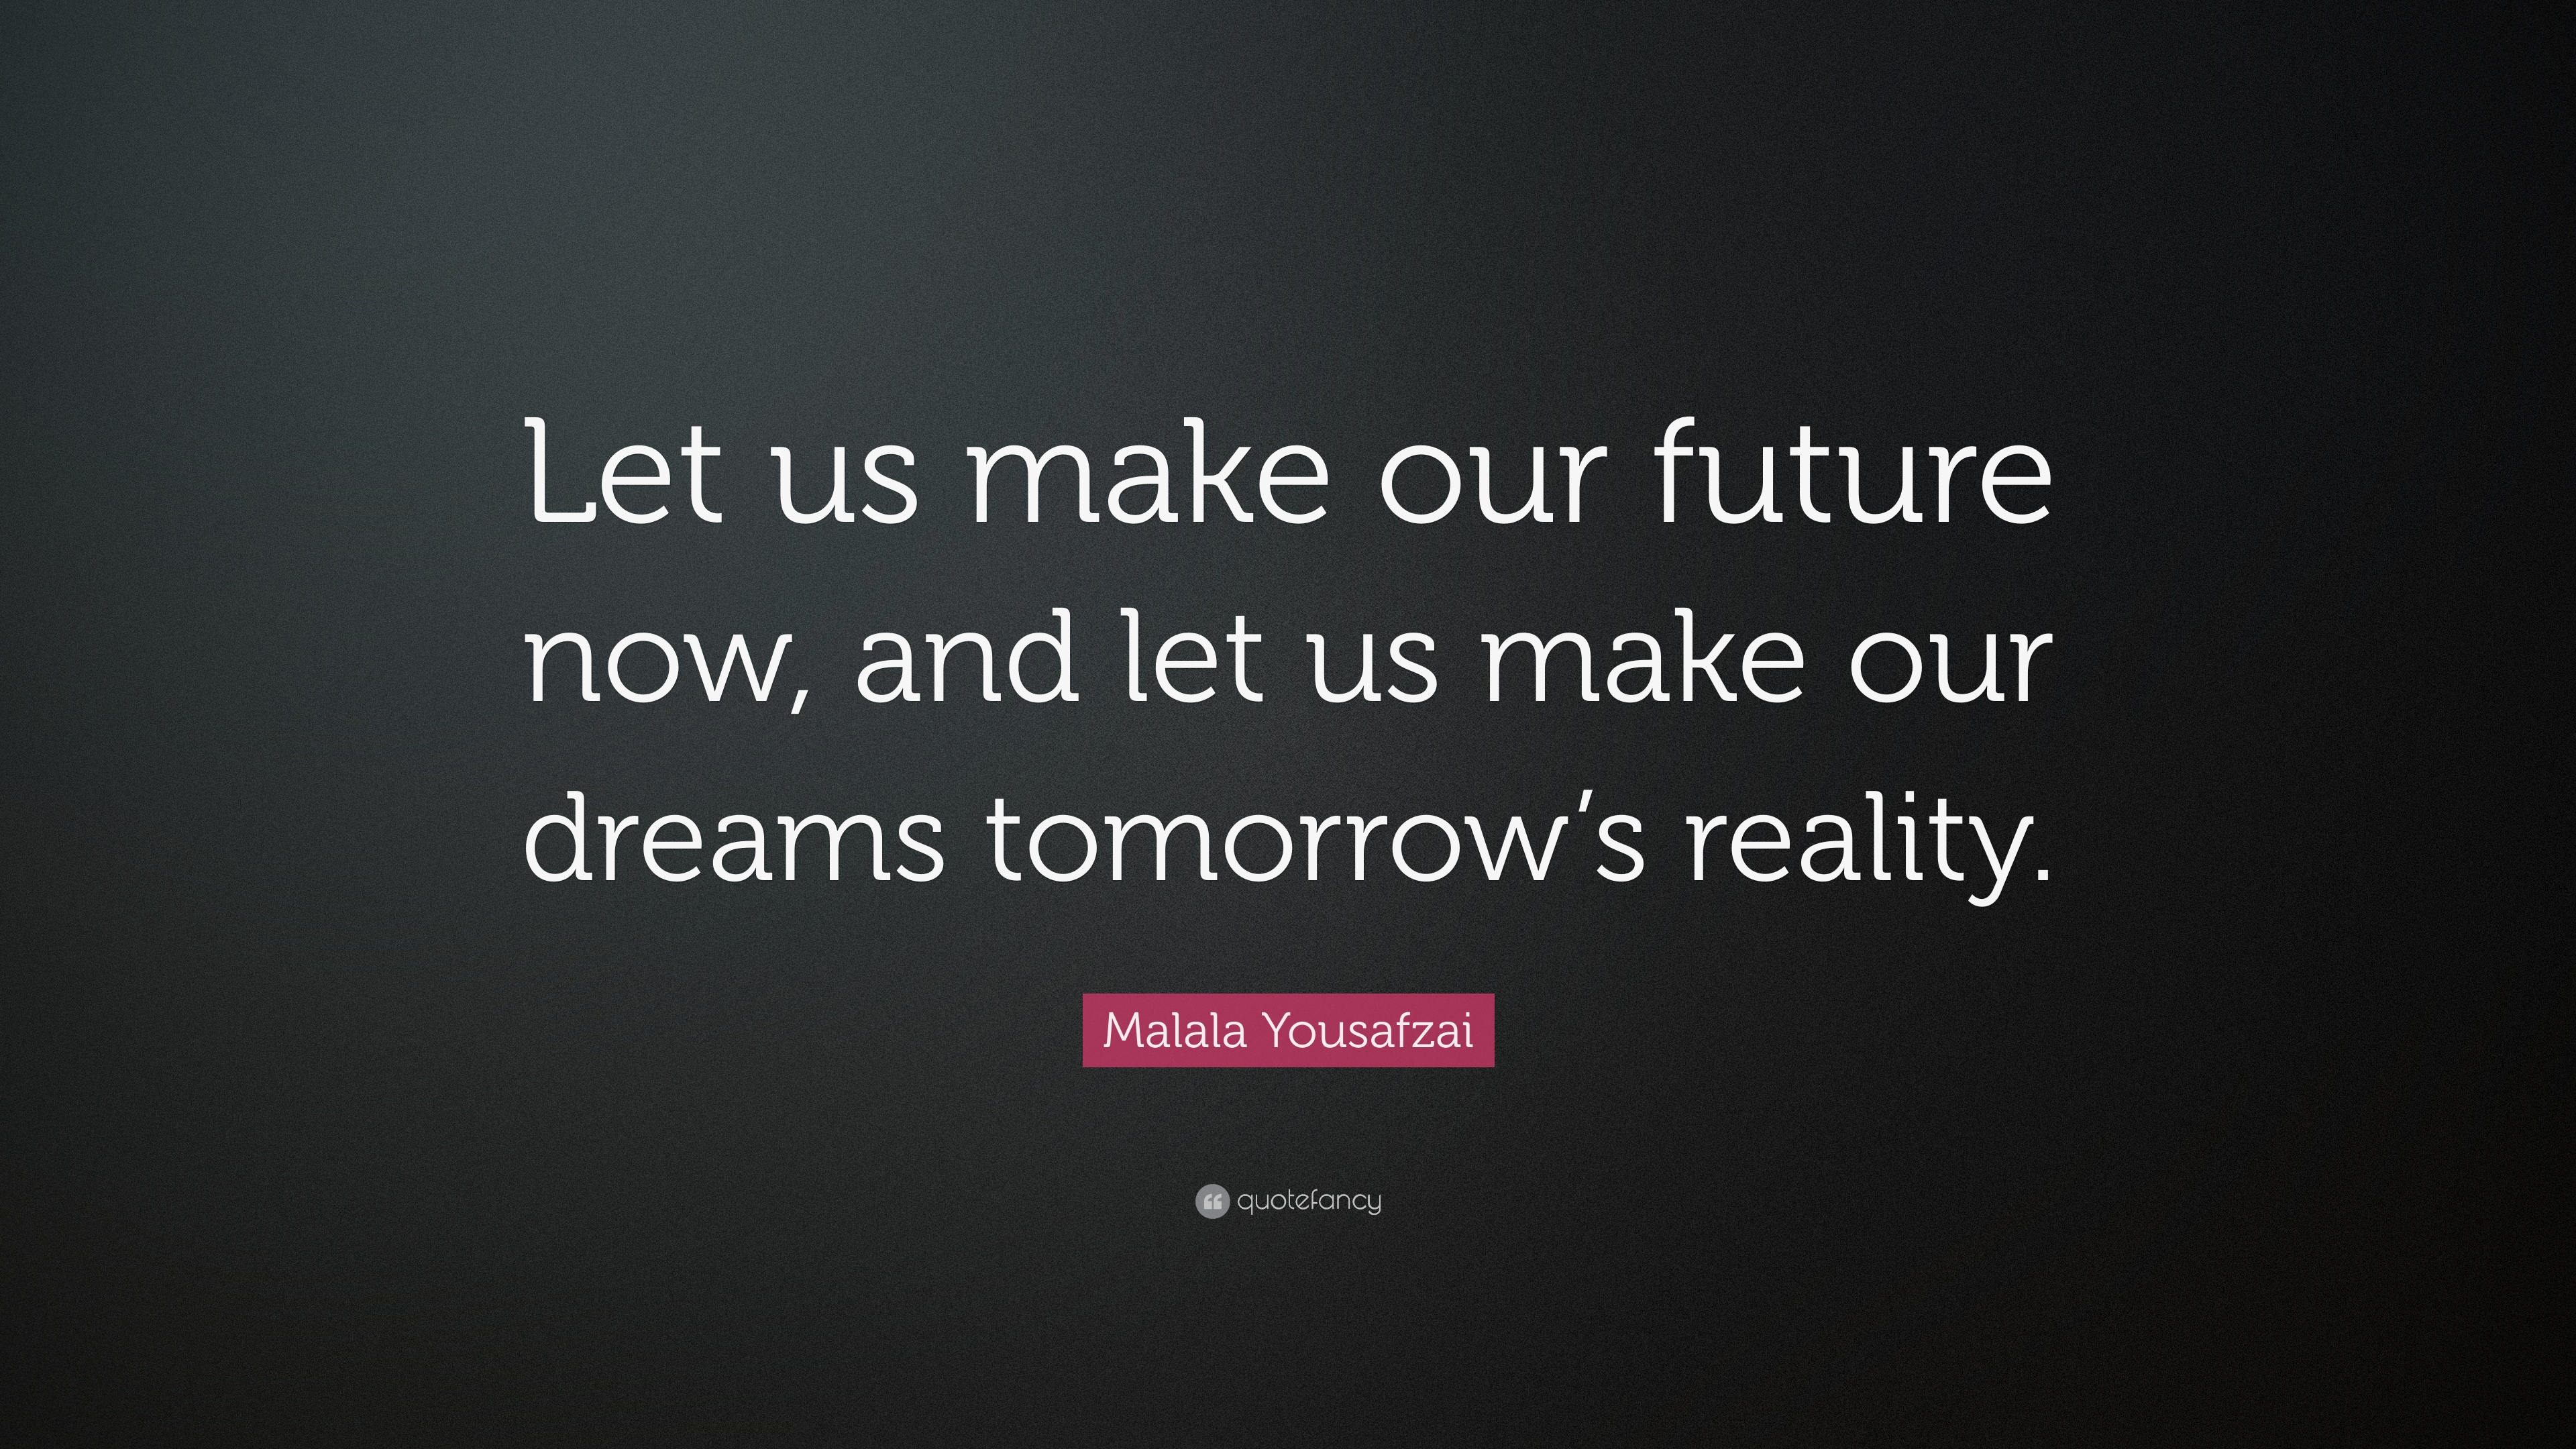 Awesome Malala Yousafzai Quote: U201cLet Us Make Our Future Now, And Let Us Make